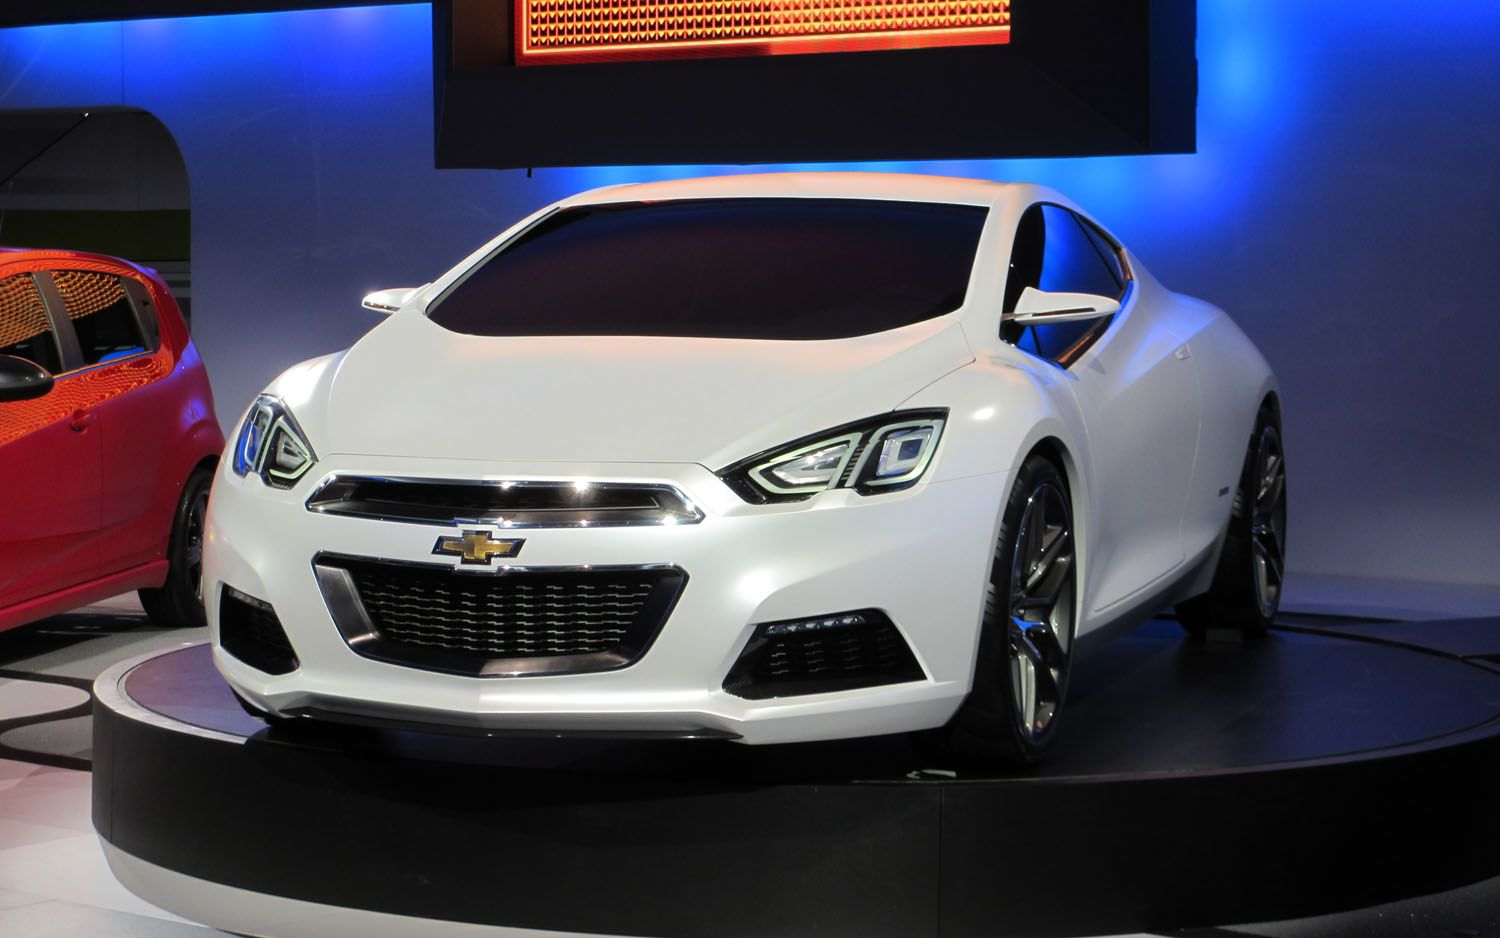 Chevy Cruze Coupe Chevrolet Cruze Coupe 13512 Hd Wallpapers